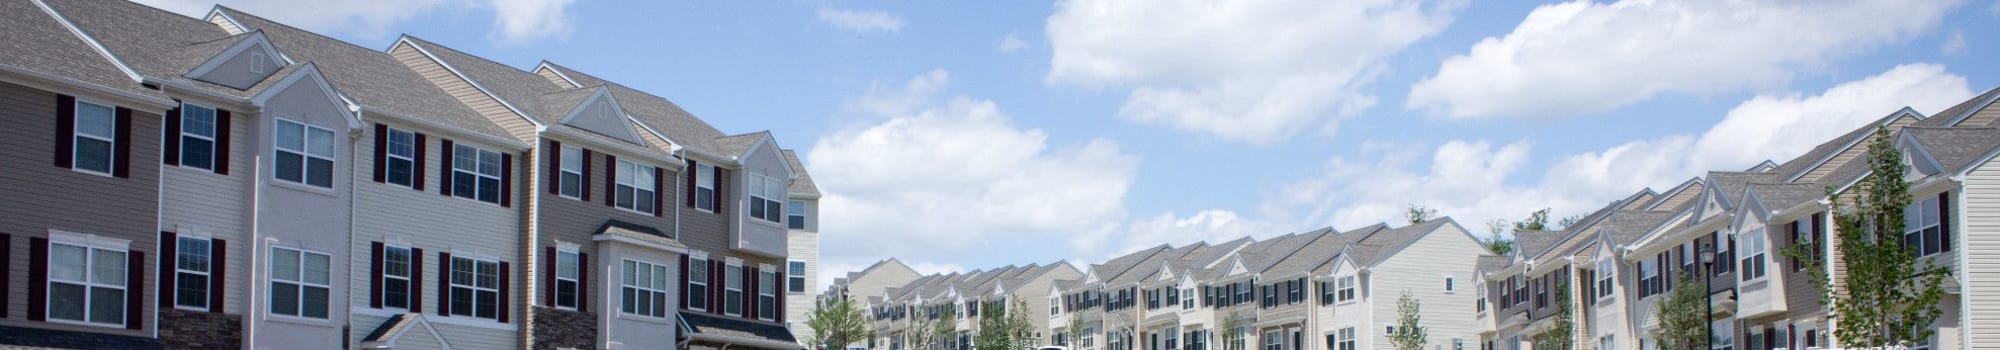 Emerald Pointe Townhomes offers a great neighborhood to its residents